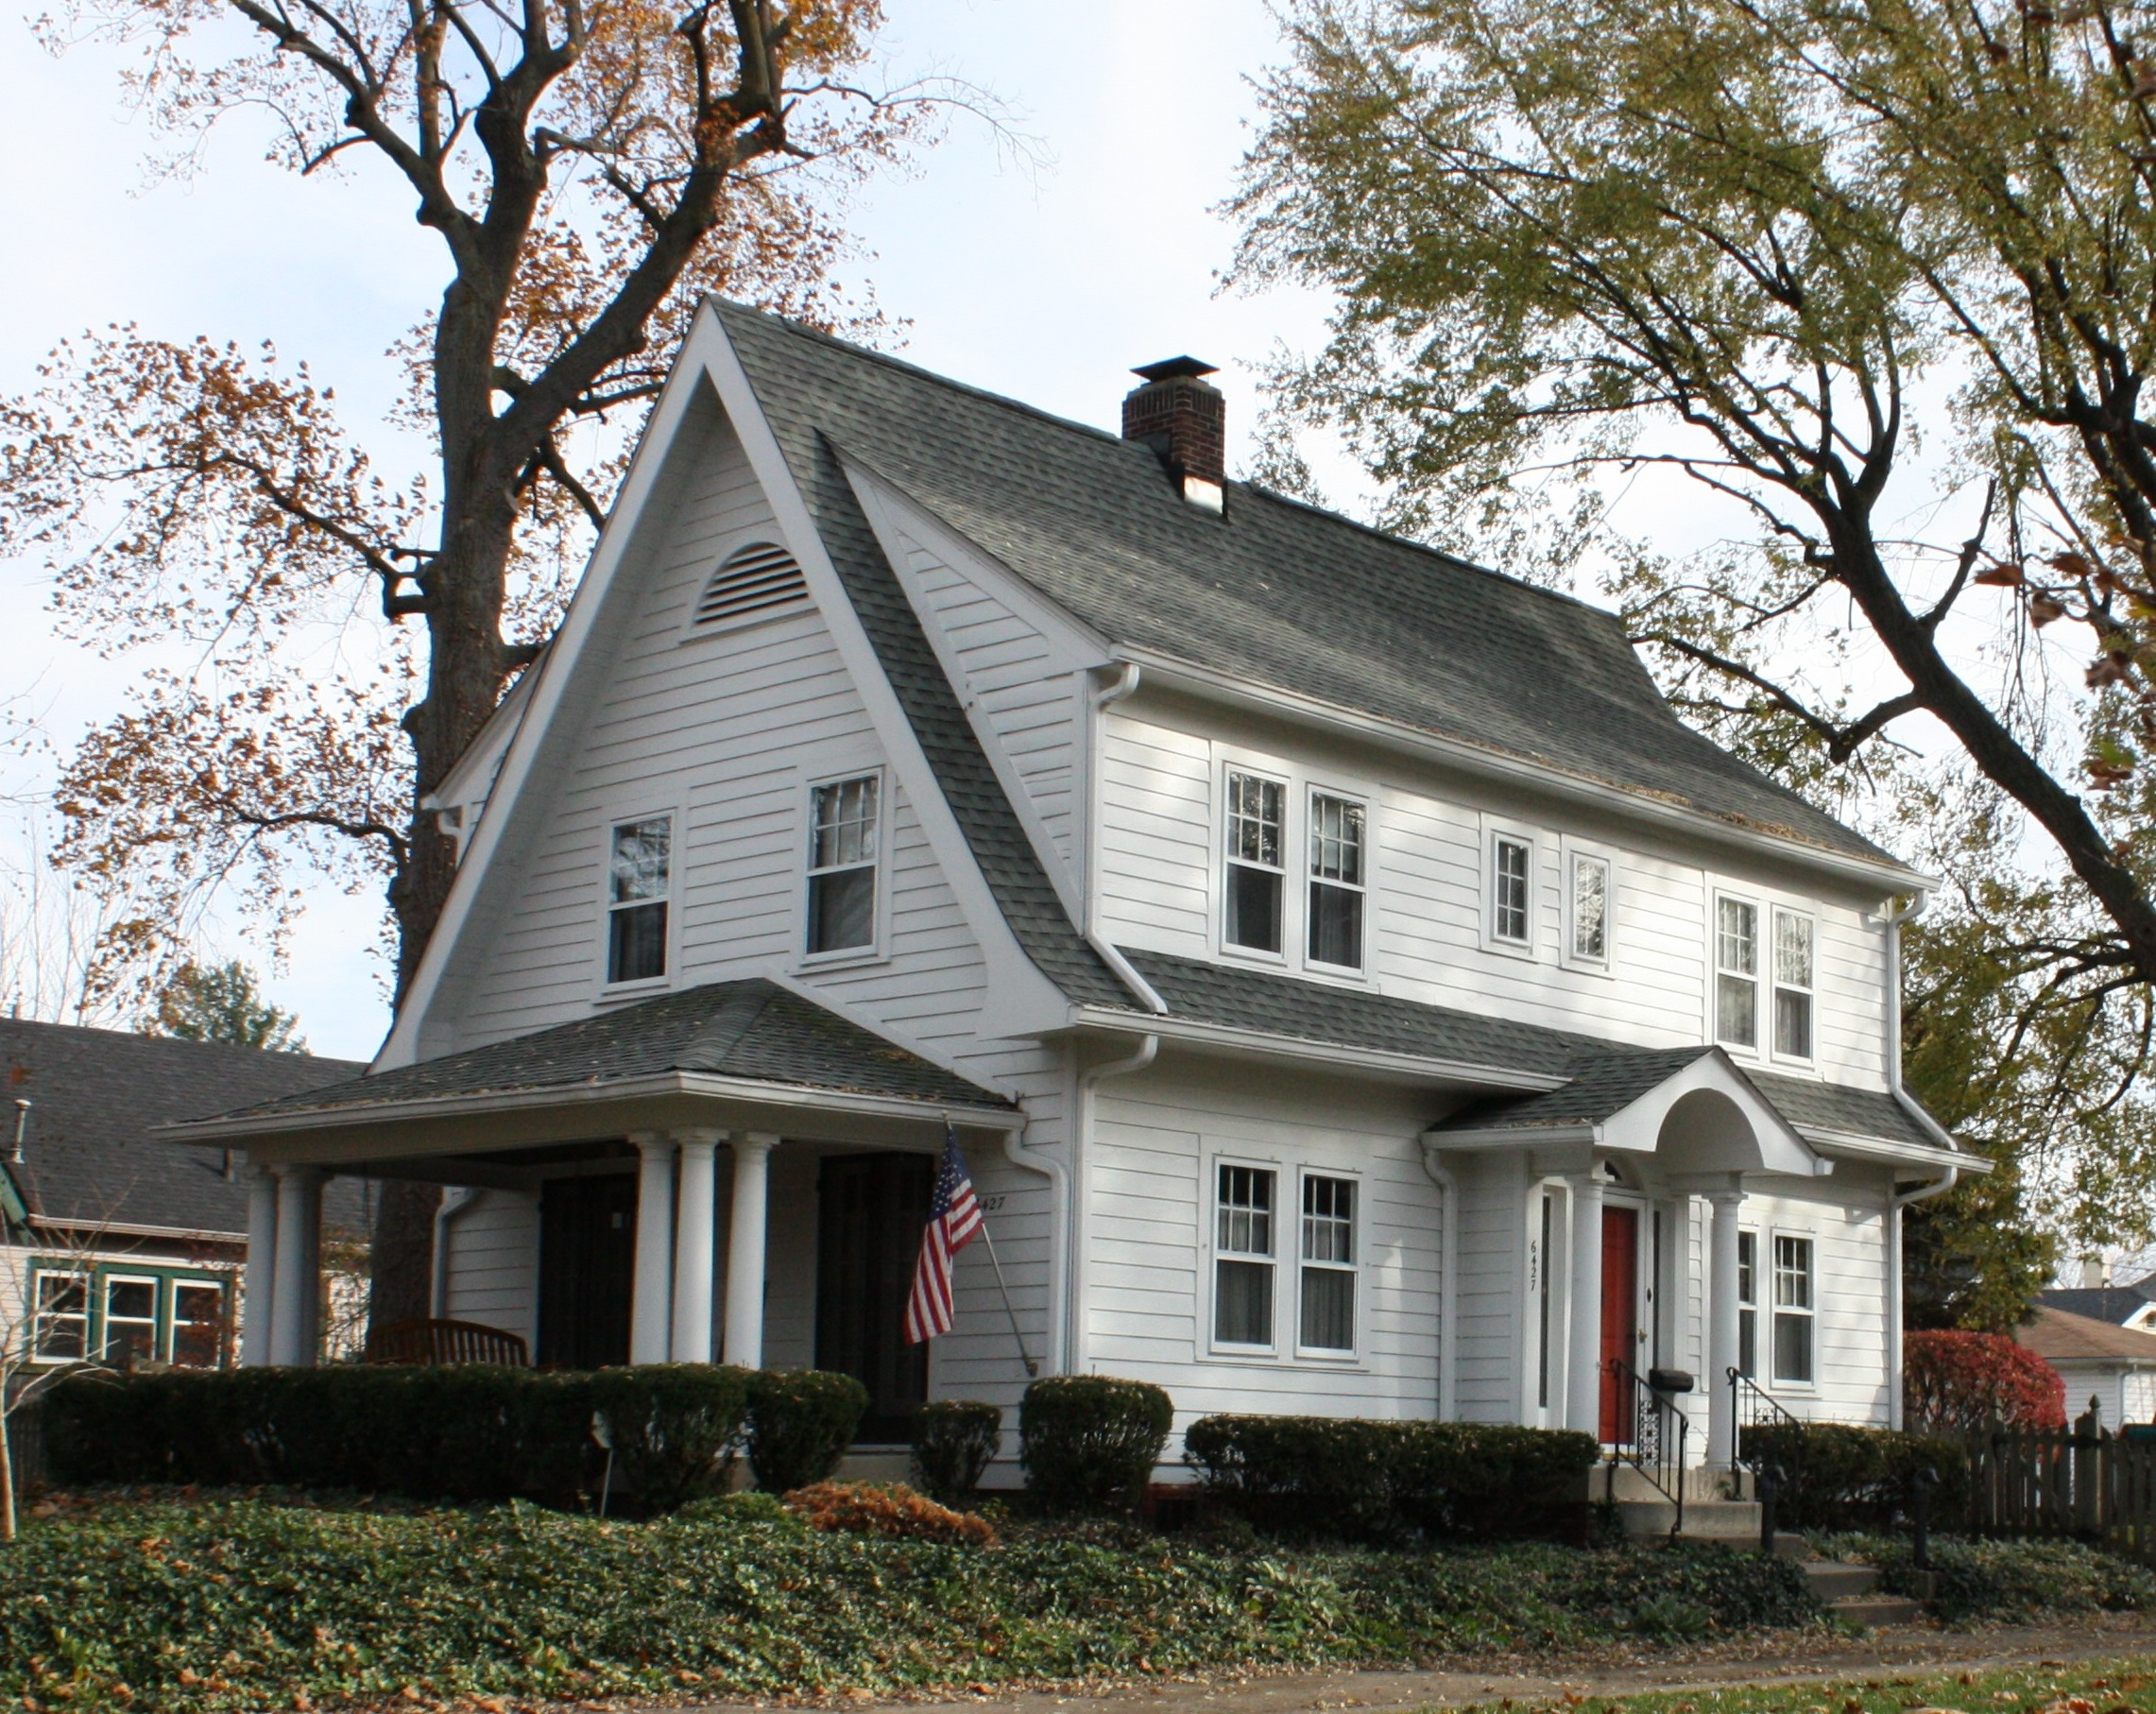 Building Language Colonial Revival Historic Indianapolis All Things Indianapolis History